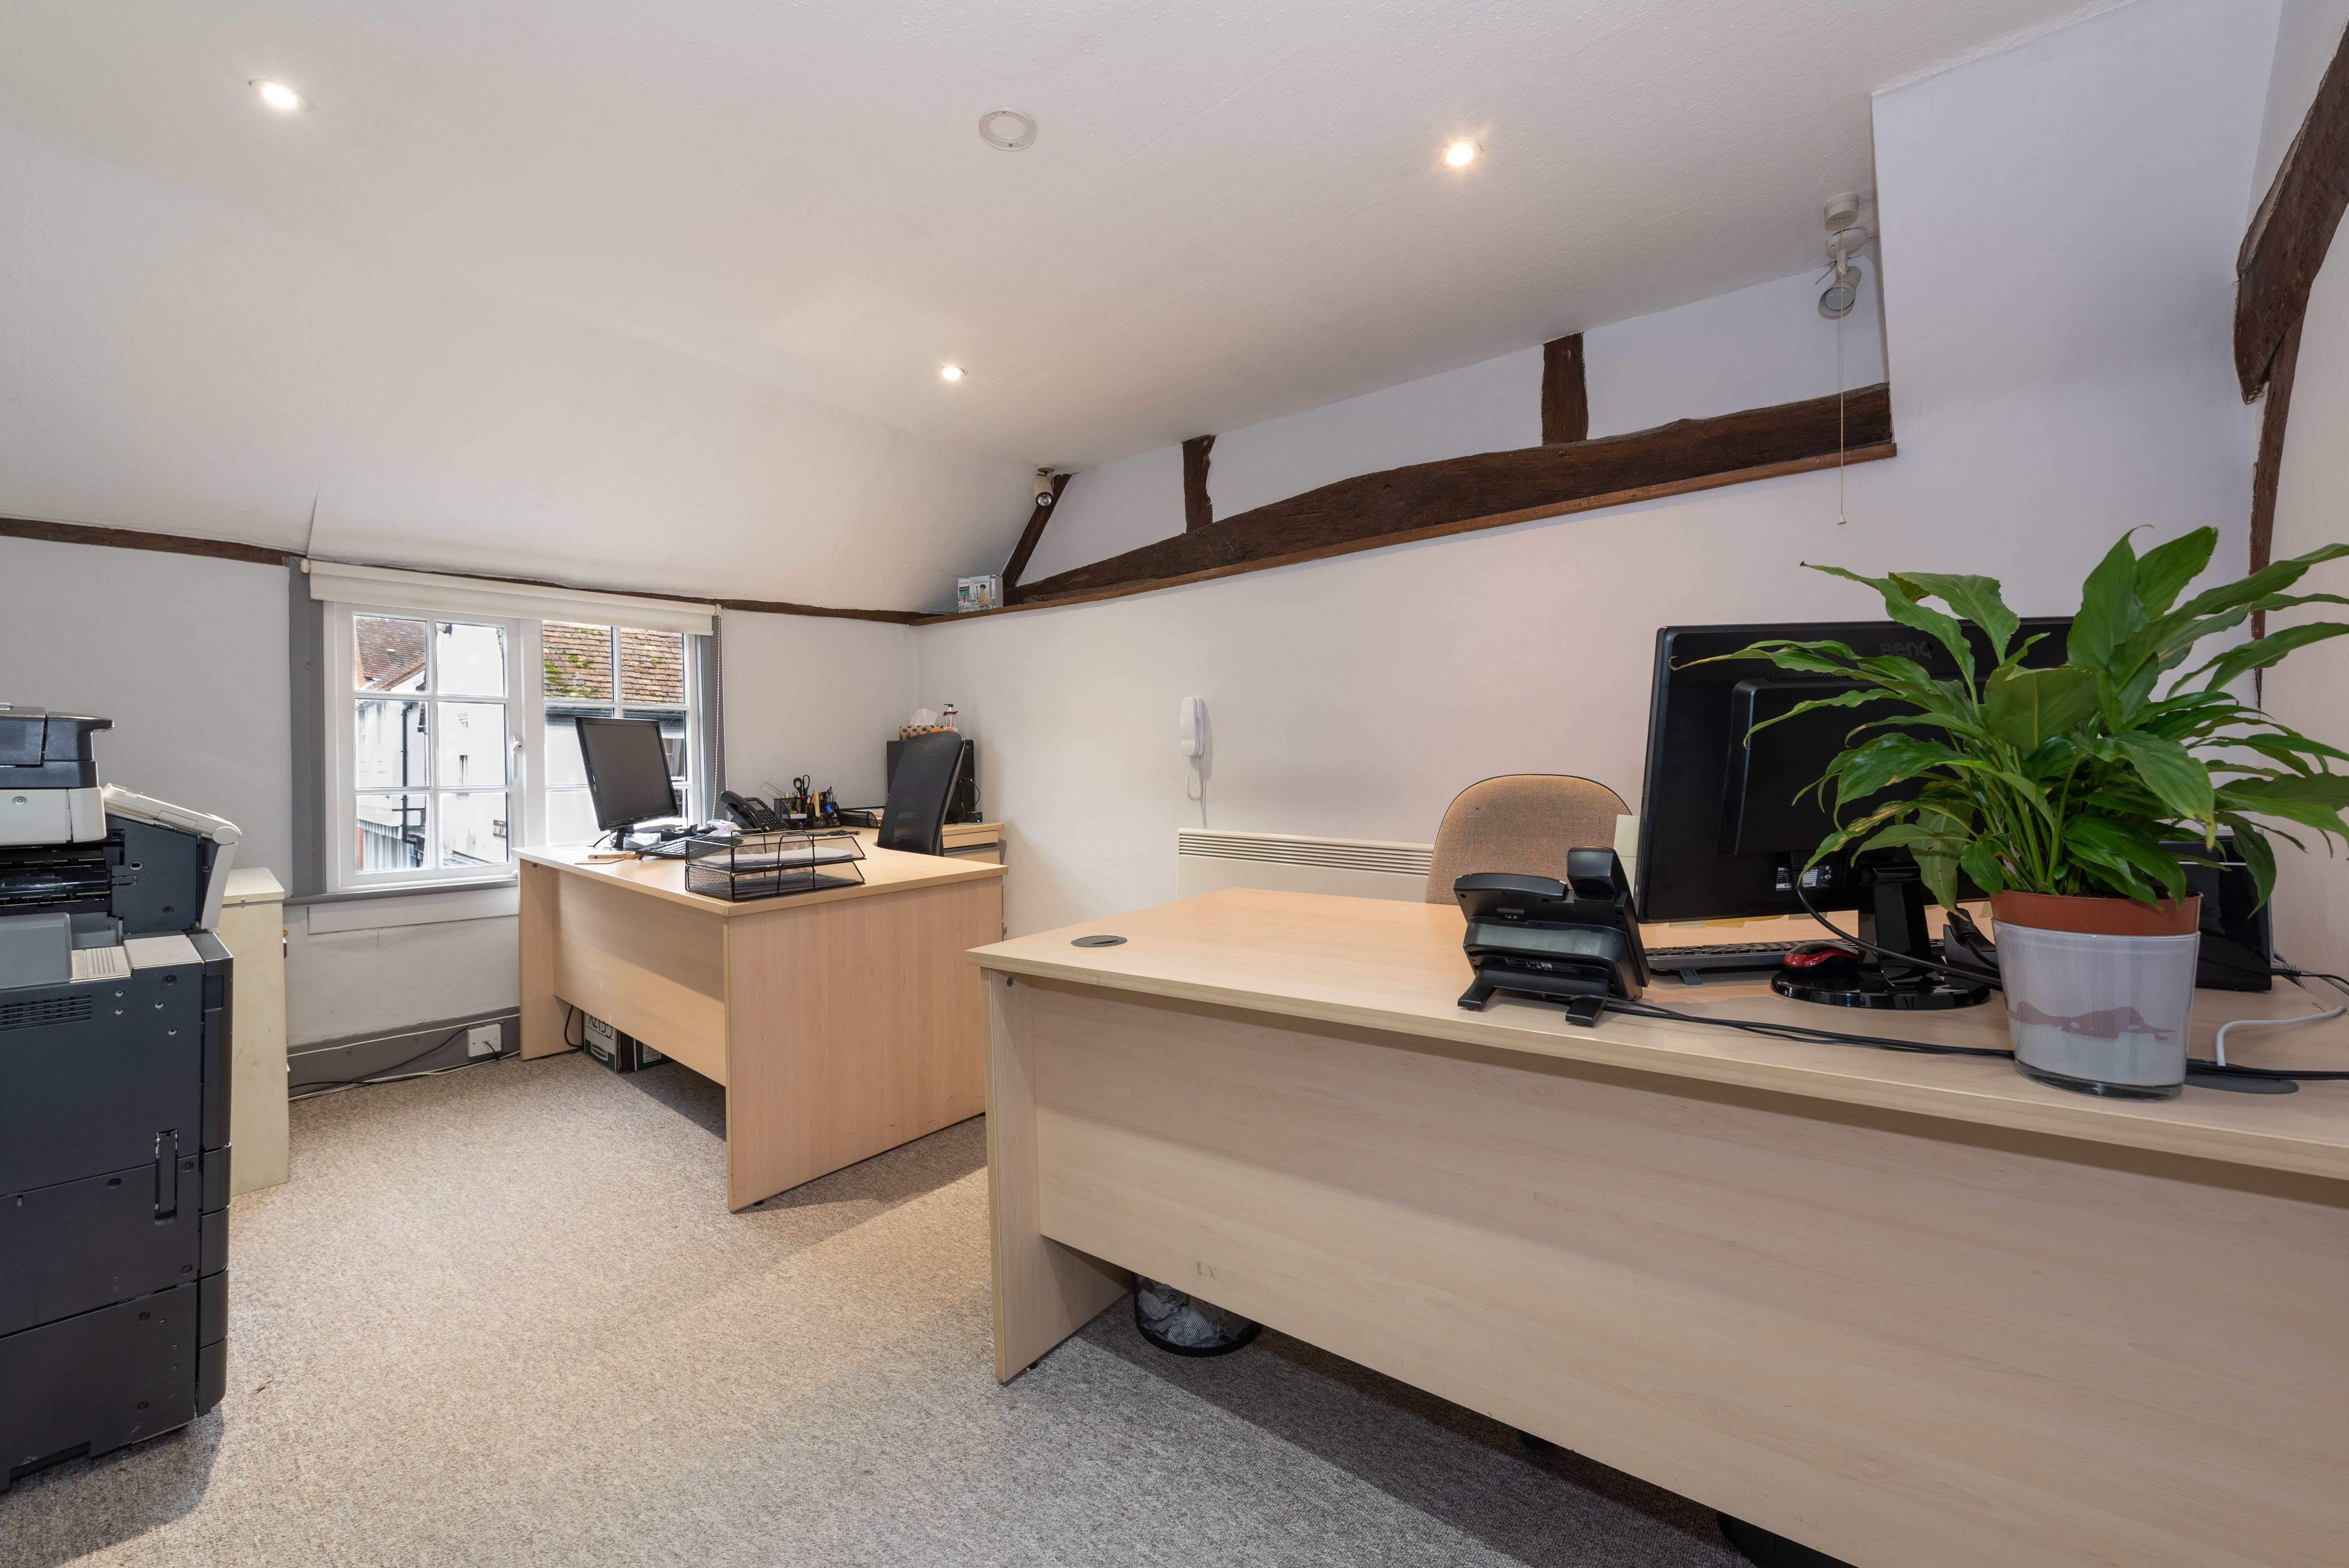 10-10A Buttermarket, Thame, Investment / Retail / Office For Sale - 10_10A Buttermarket-13.jpg